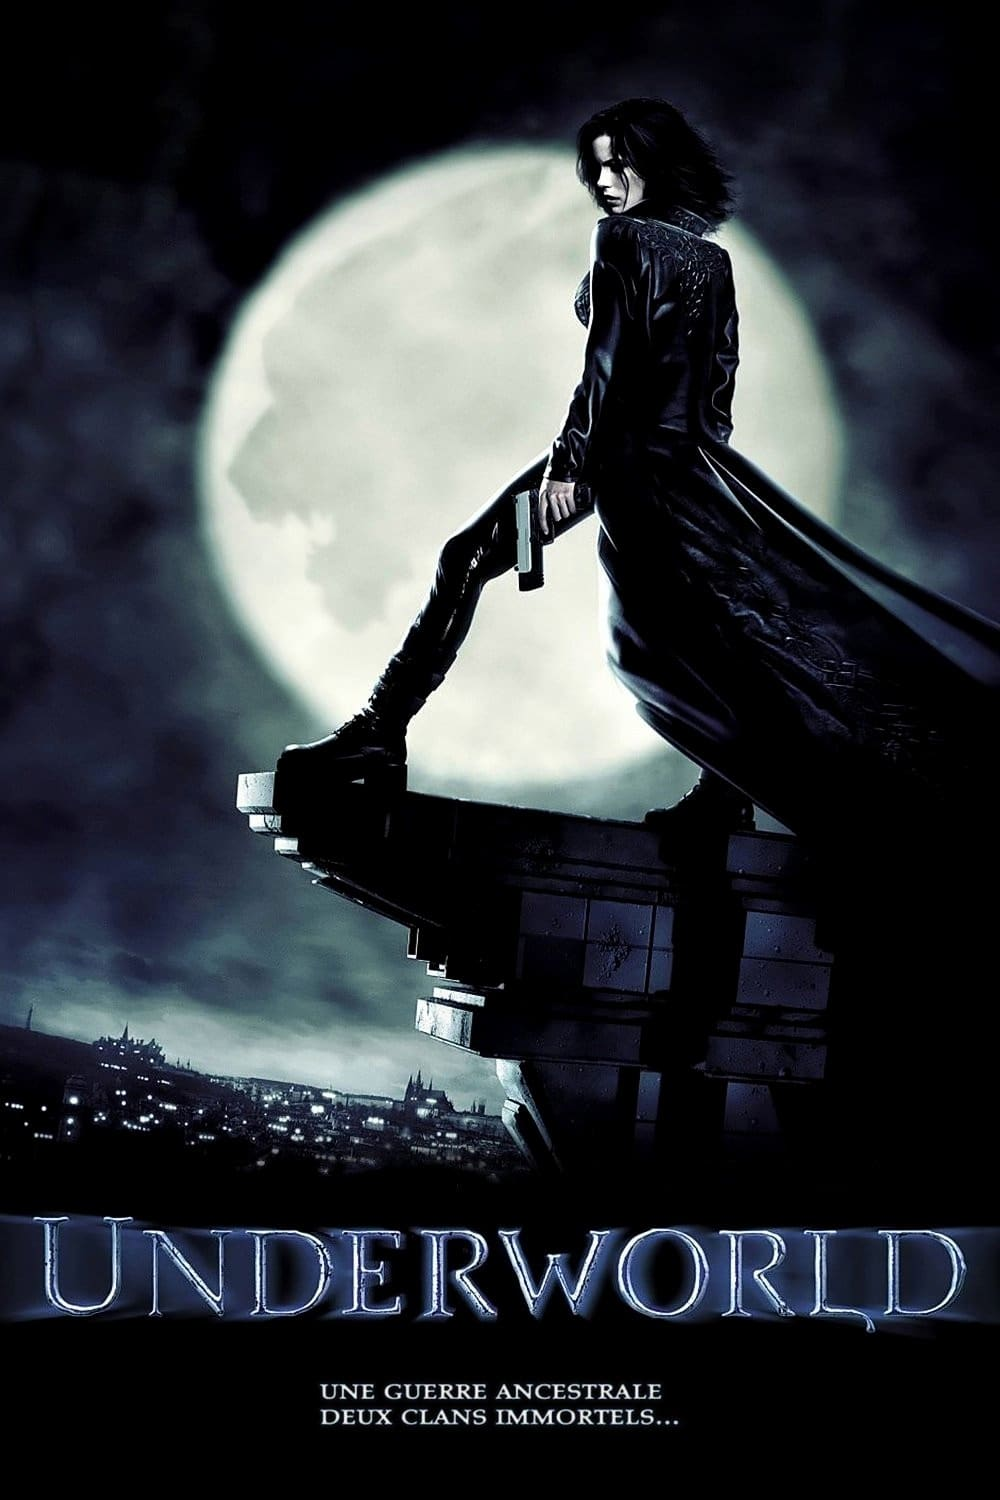 Regarder Underworld en streaming gratuit